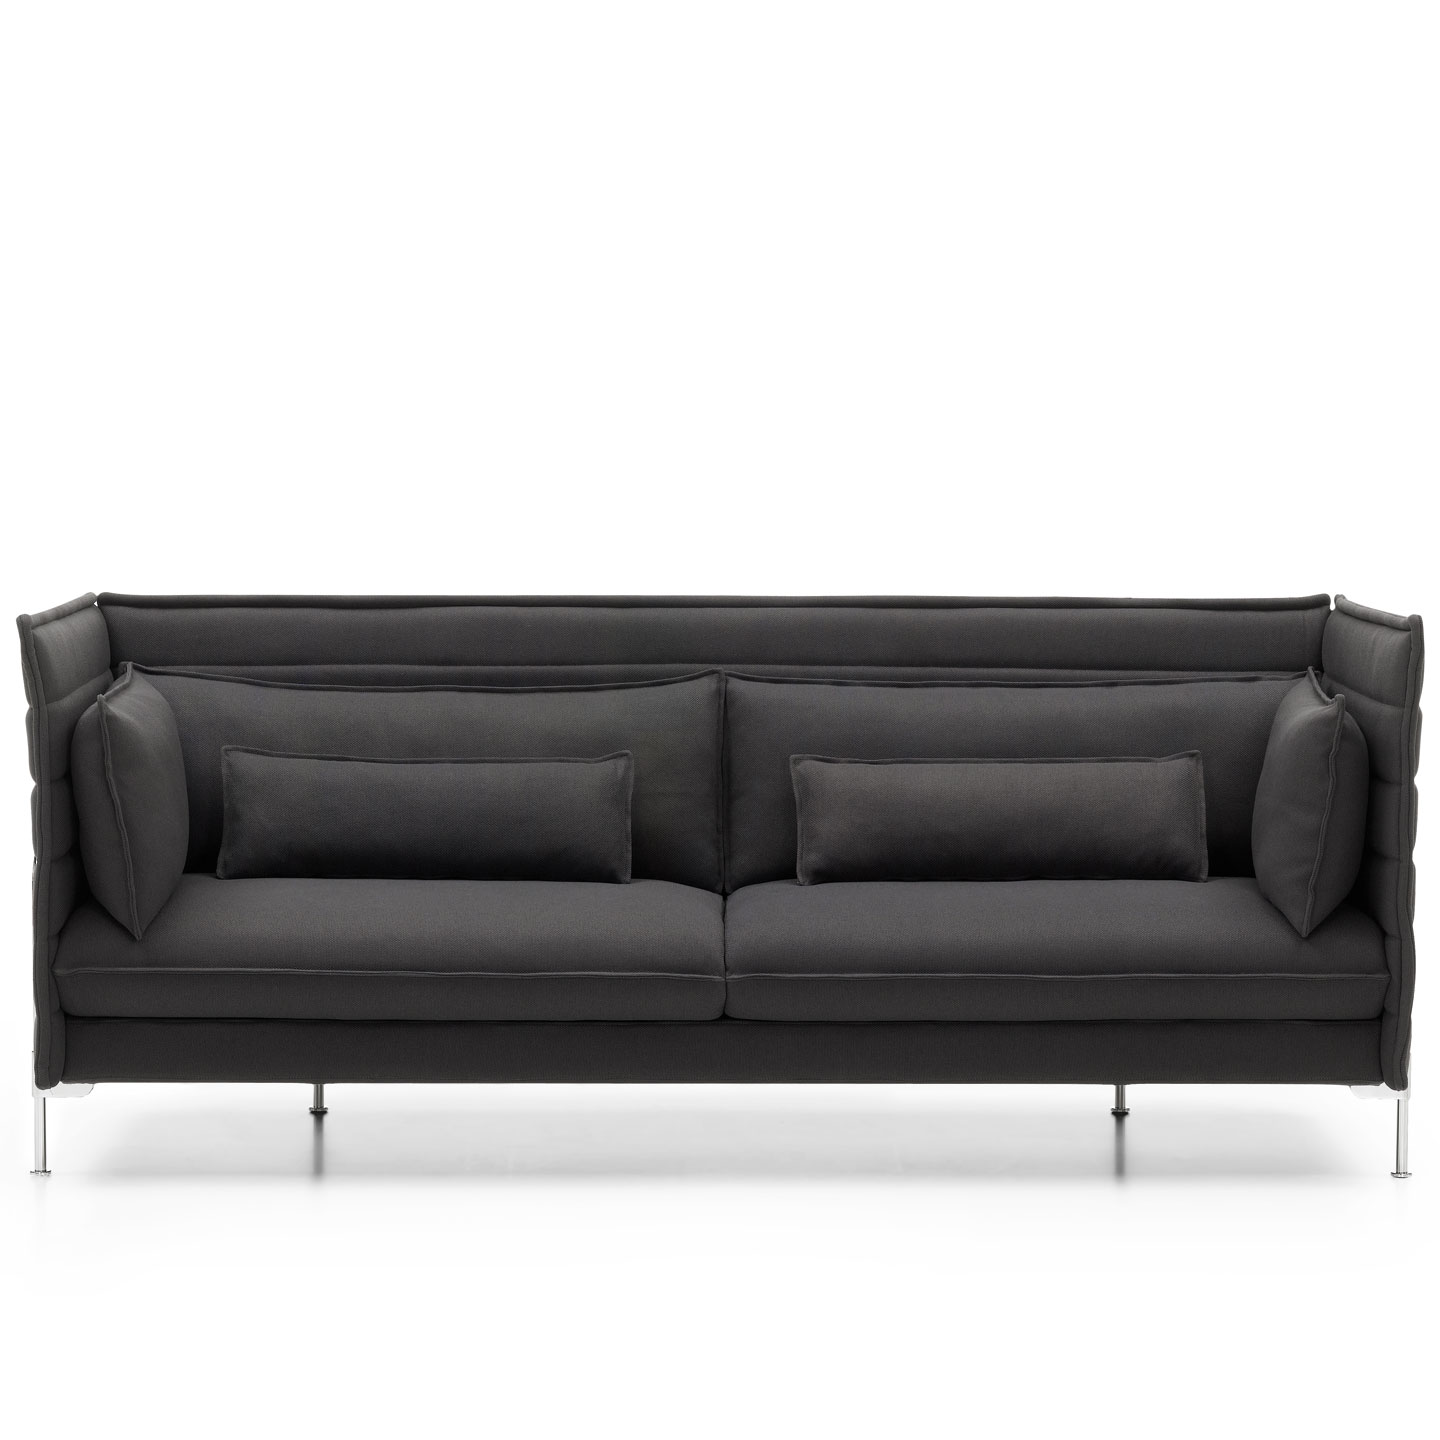 Alcove 3 Seat Sofa by the Bouroullec Brothers for Vitra